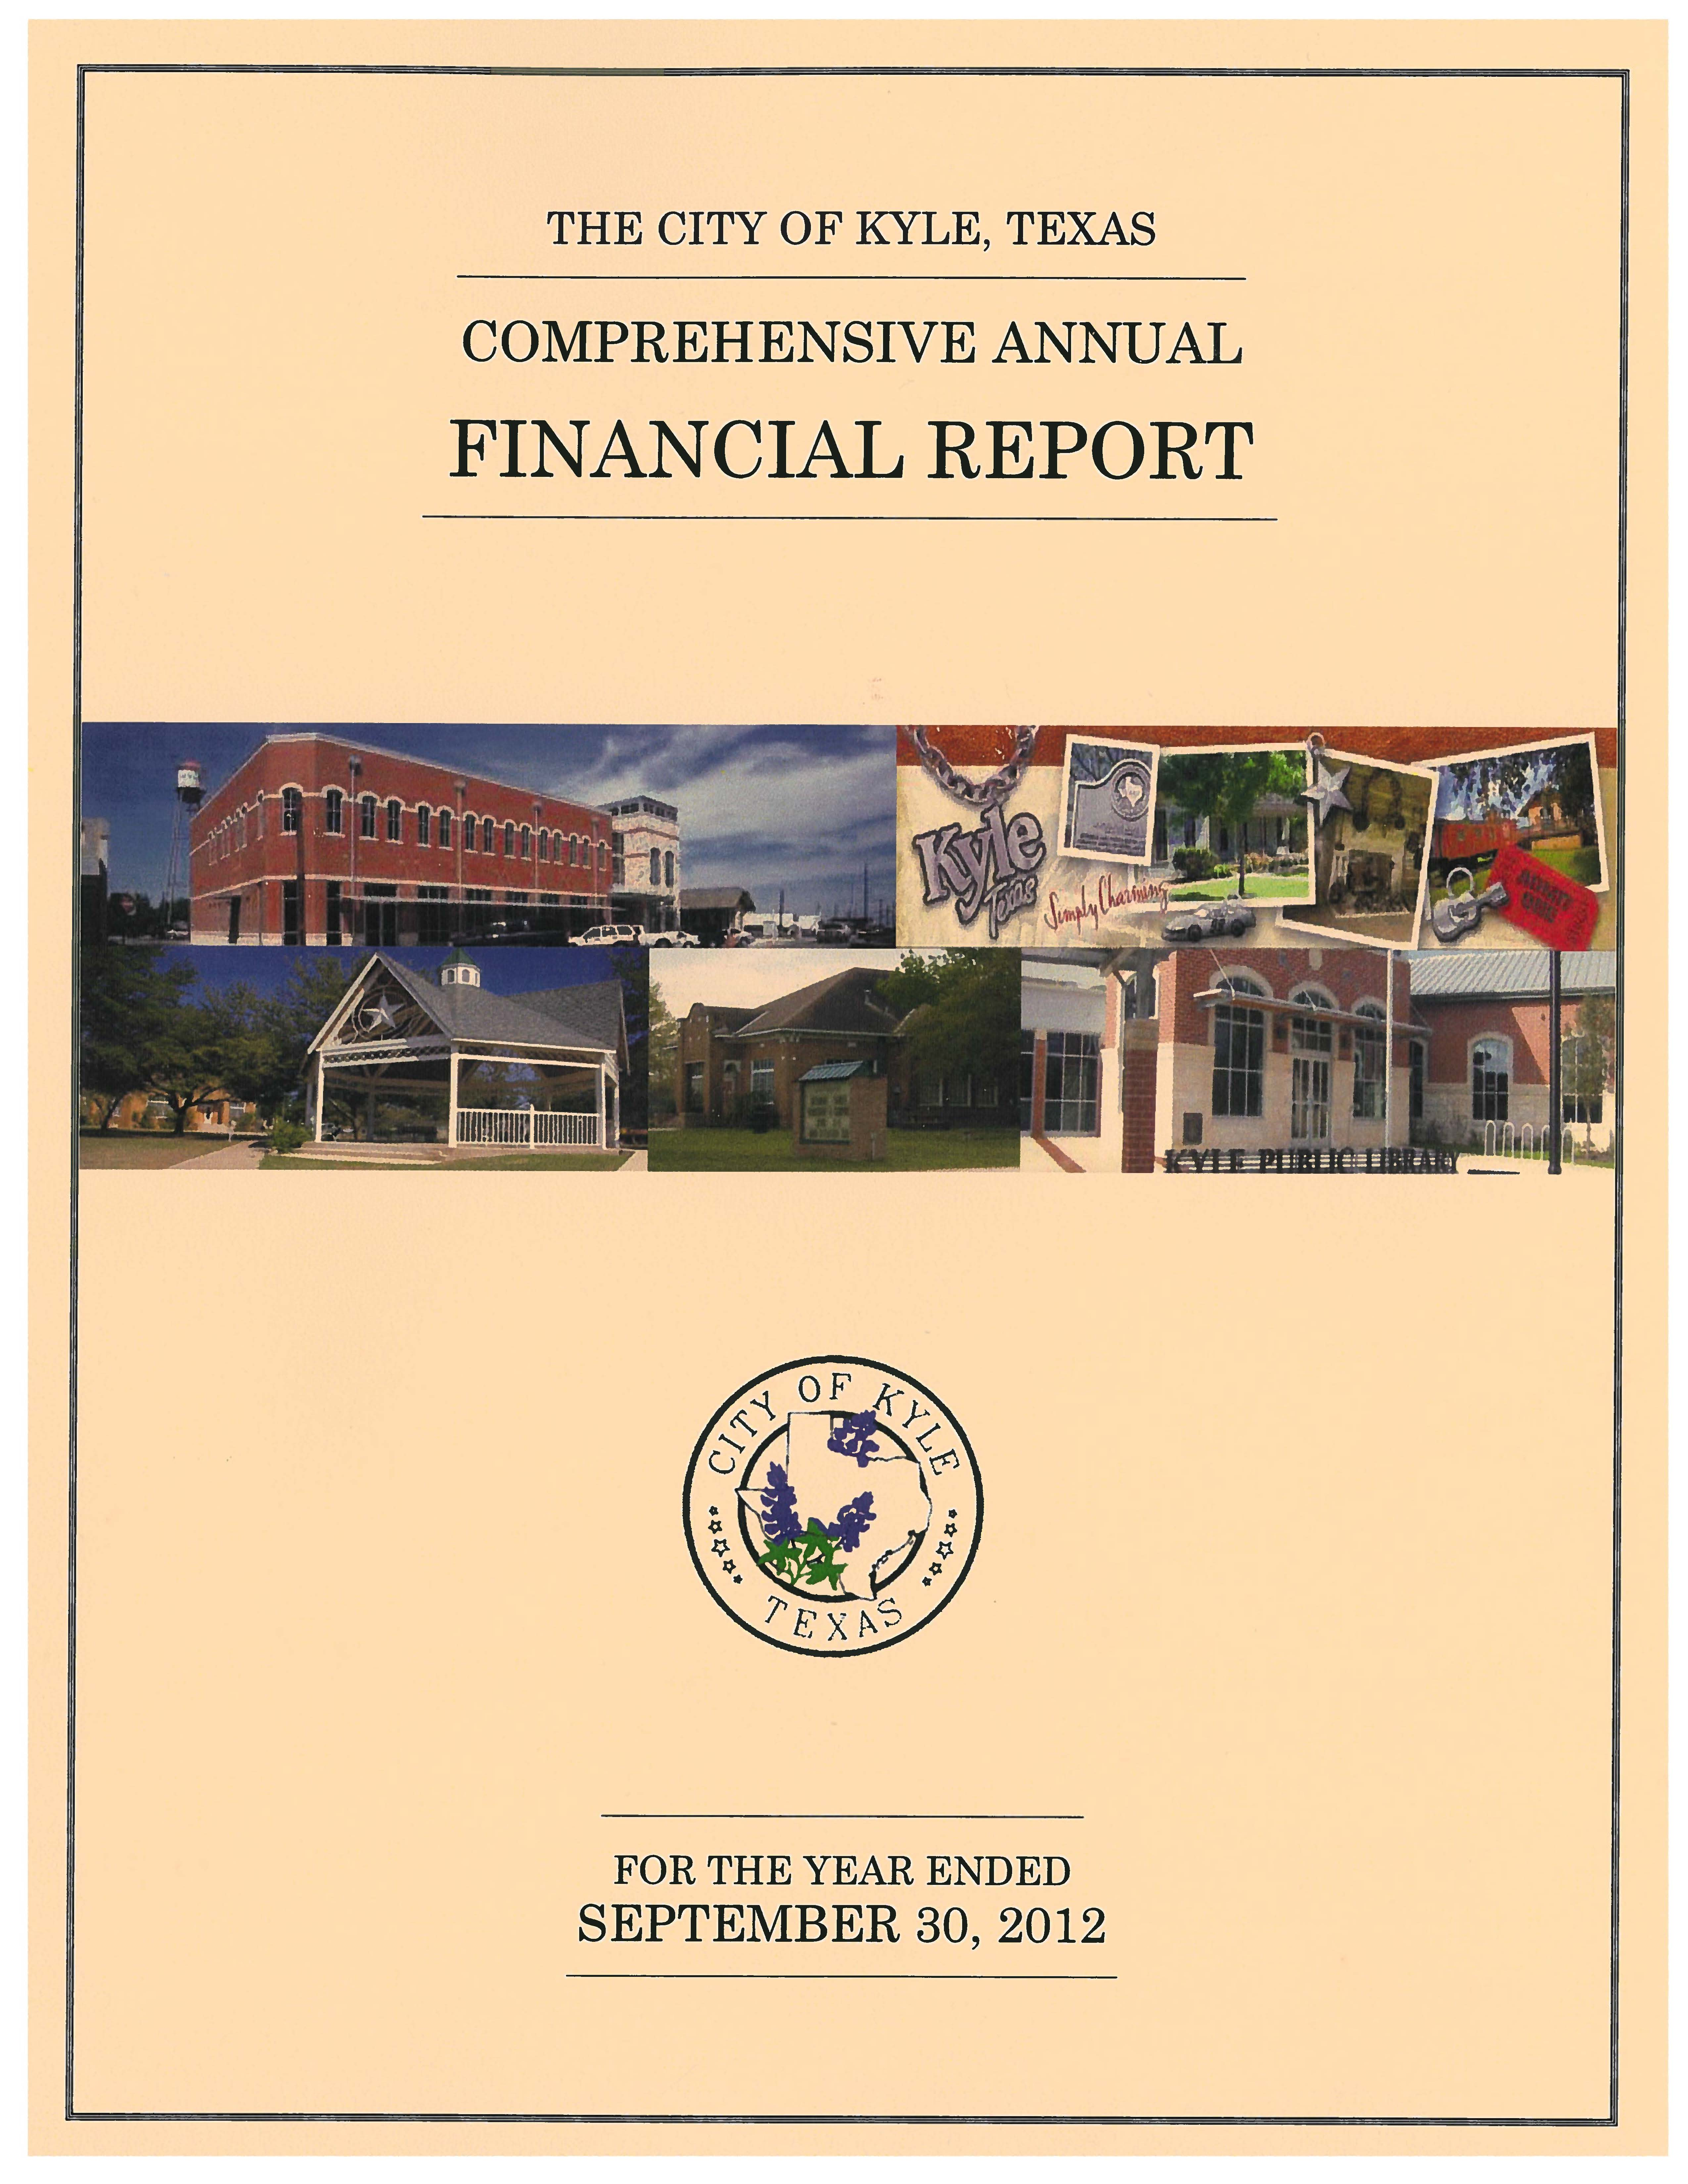 michigan's comprehensive annual financial report The comprehensive annual financial report of the city of portage, michigan for the fiscal year ended june 30, 2013 has been completed responsibility for both the accuracy of the data and the completeness and fairness of the presentation, including all disclosures, rests with the city's management.